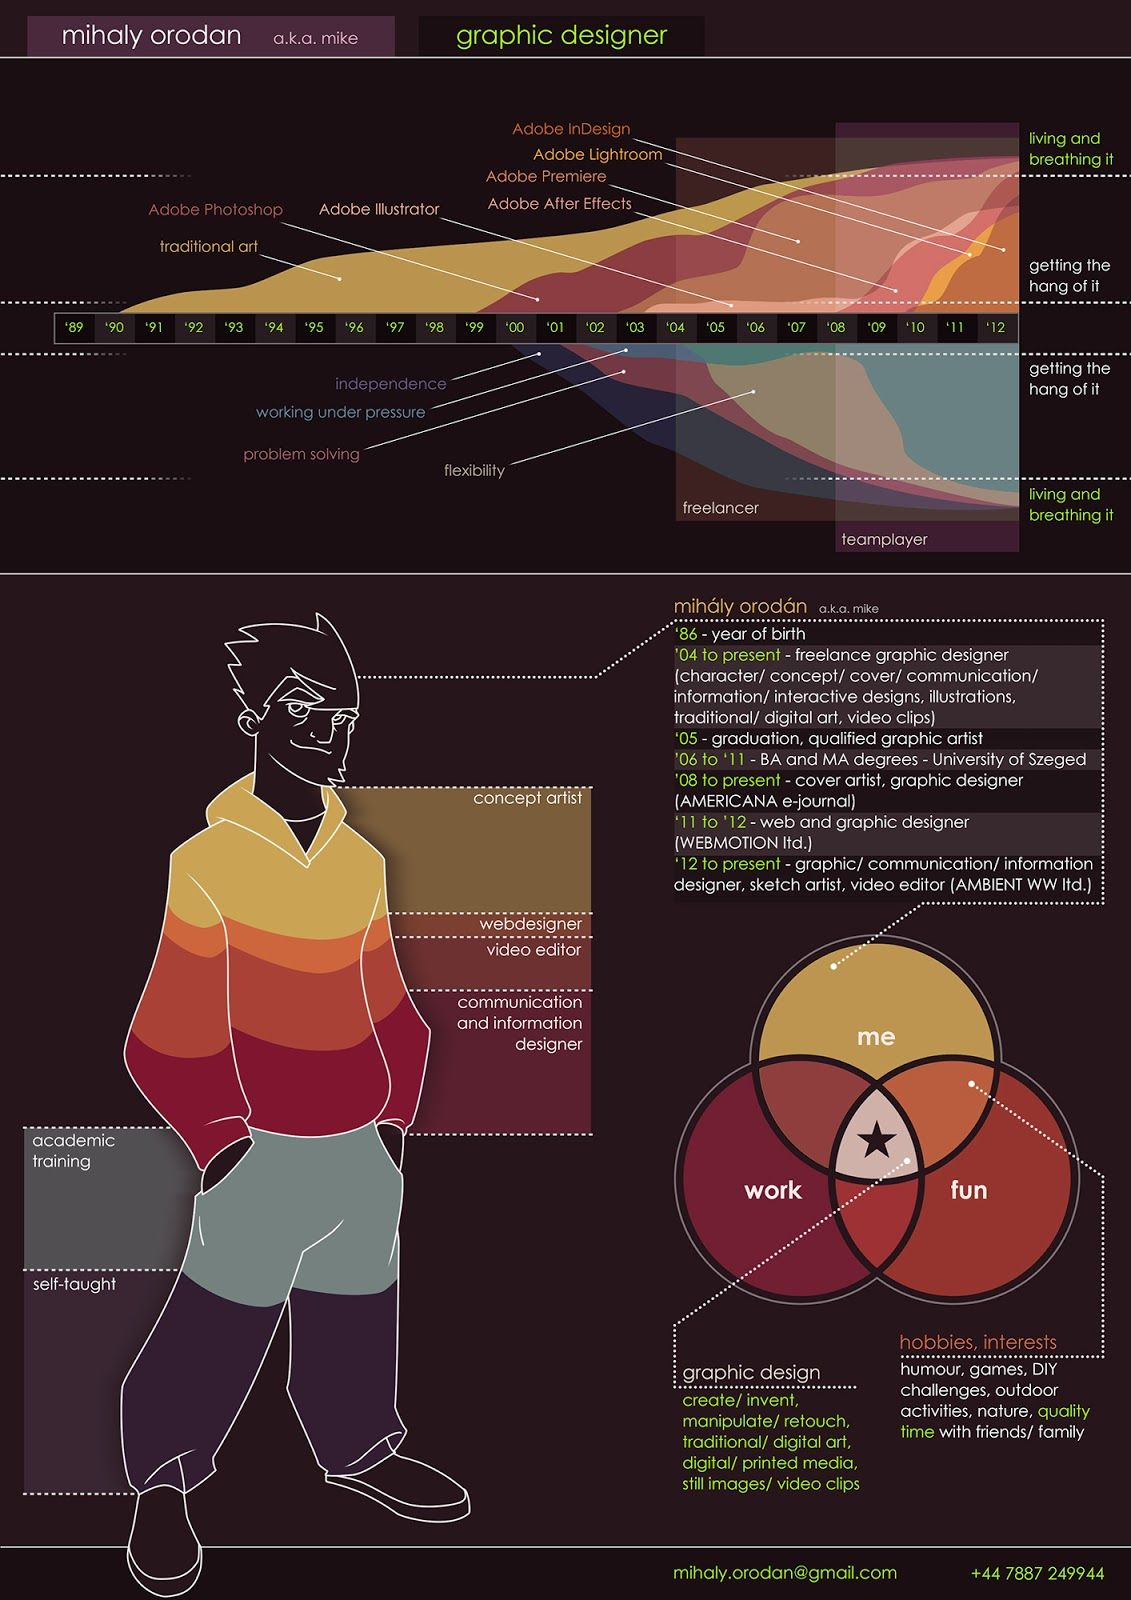 """""""The Intersection of Traditional and Digital Art"""": Info-ducing: me! (my infographic CV)- mihaly orodan"""